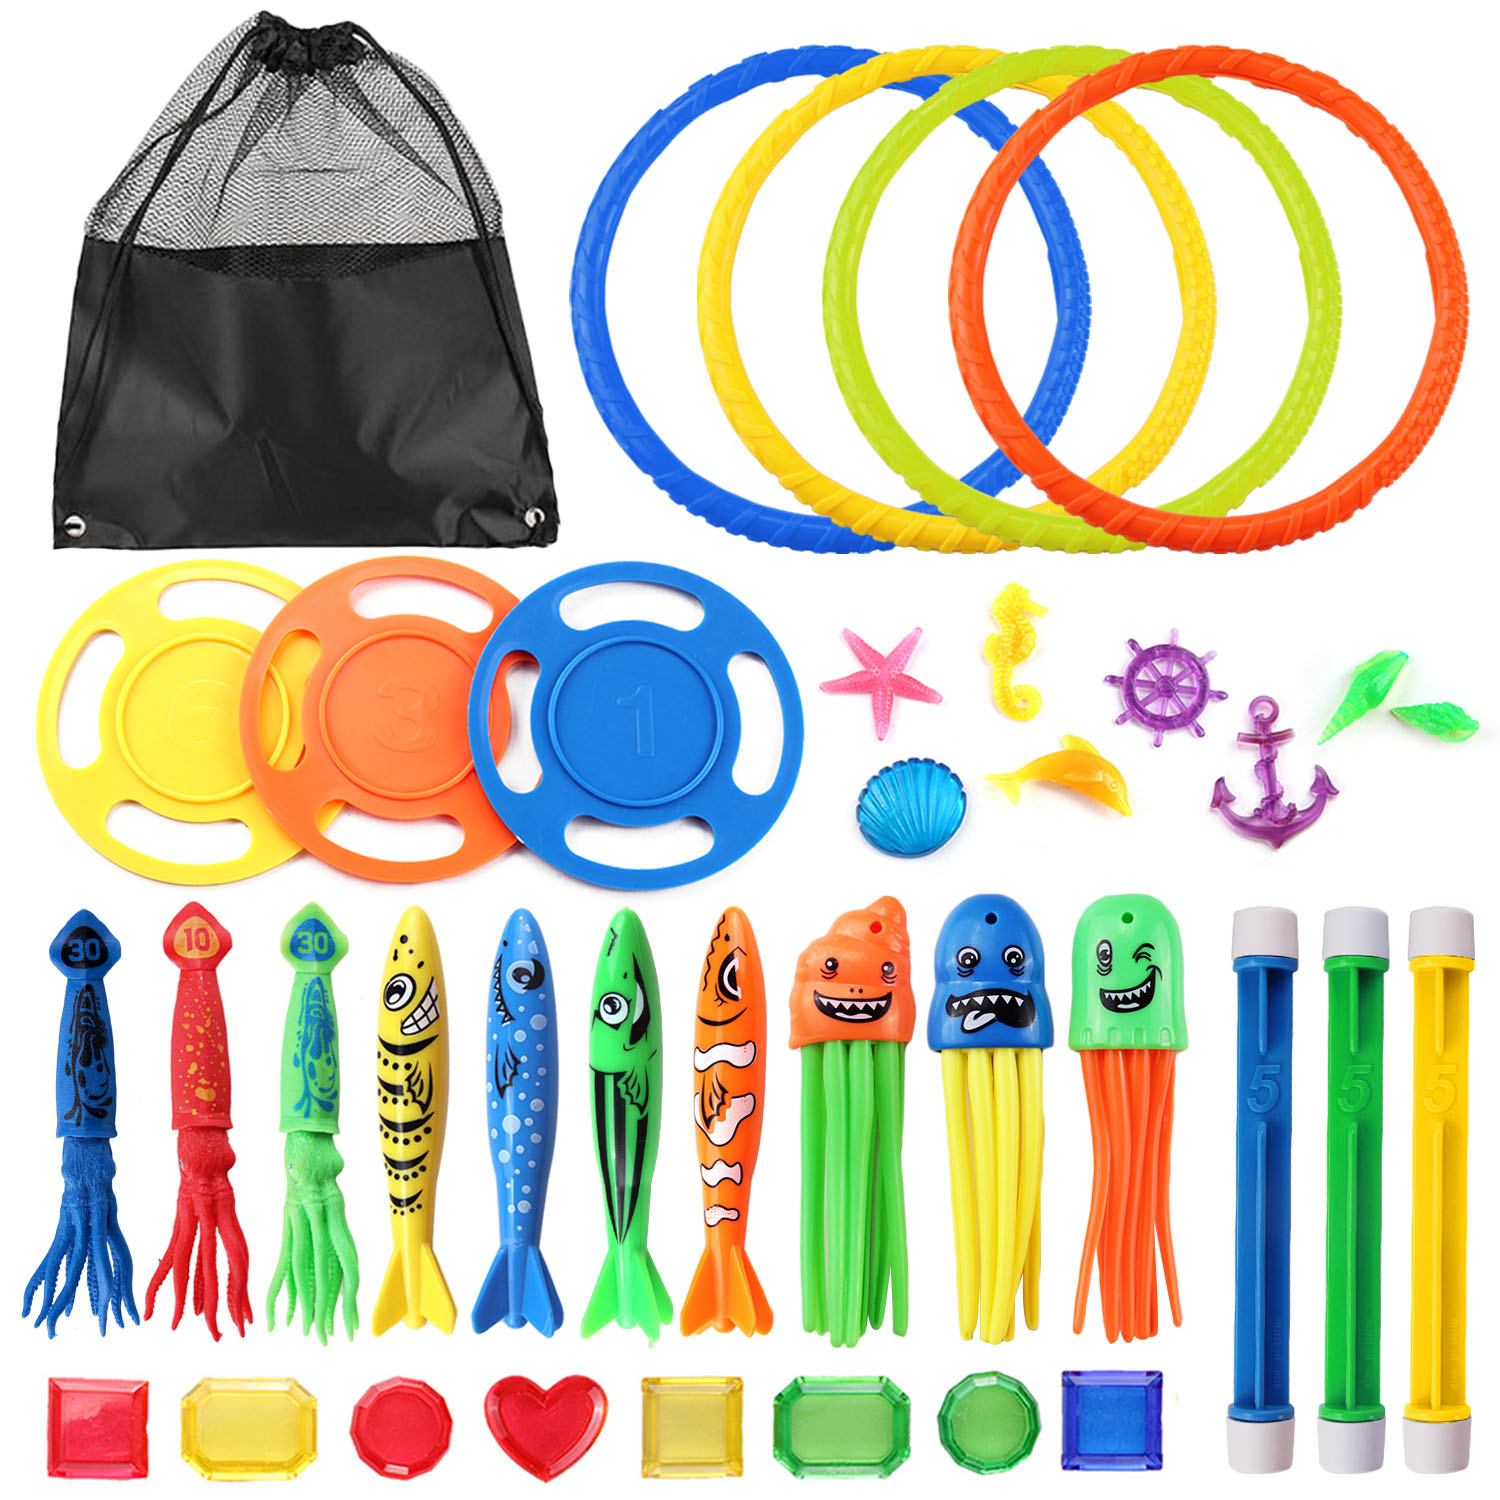 36PCS Funny Kids Diving Toys Set Underwater Water Play Toys With Storage Bag For Boys Girls Summer Games Swimming Pool Party